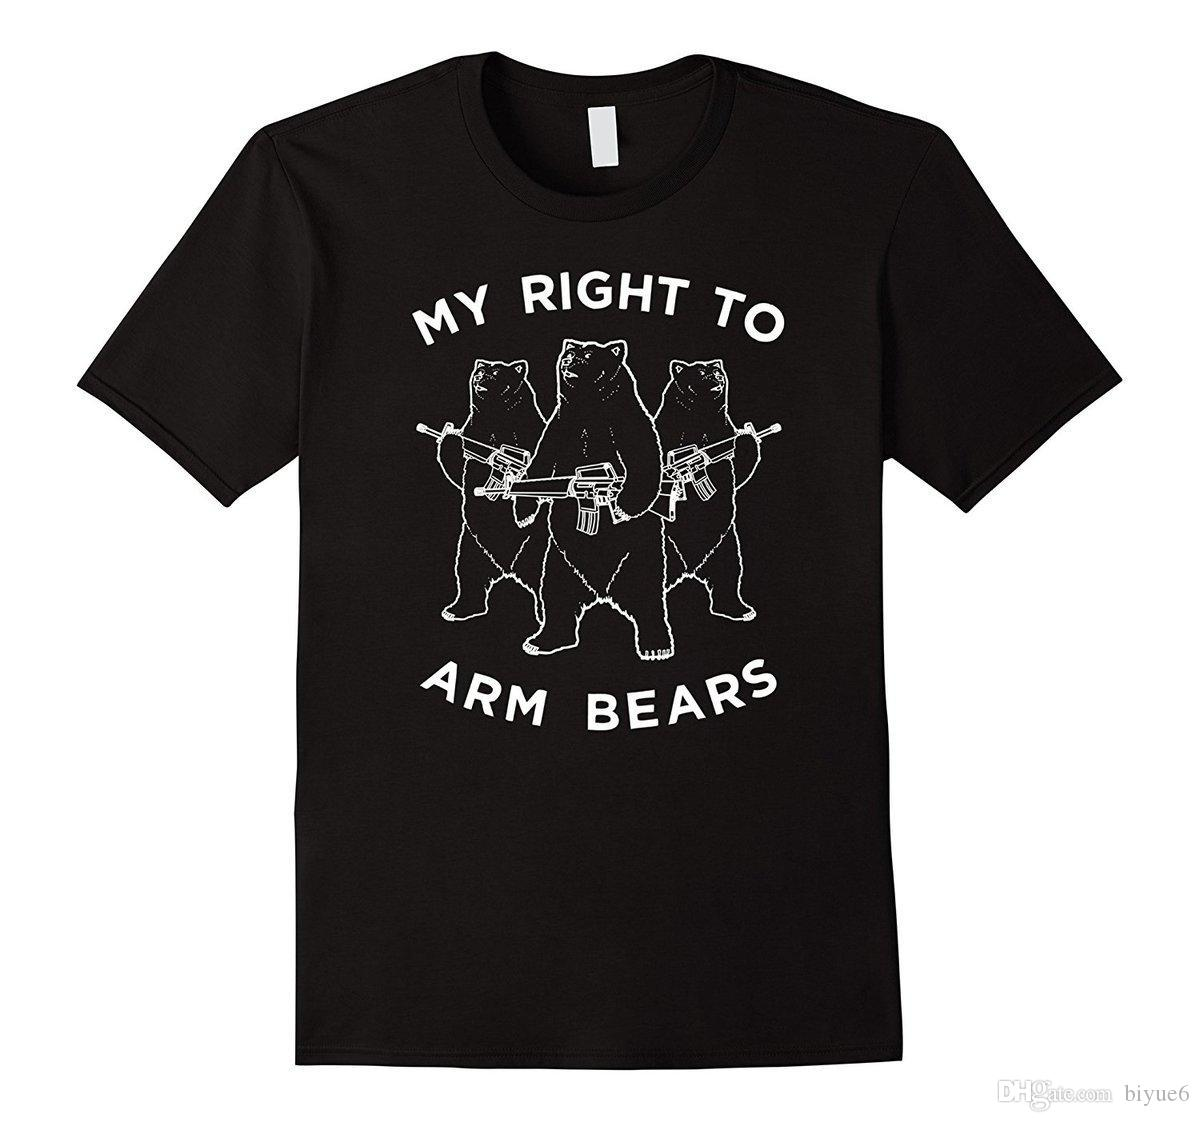 6931e79ebe613 Funny Bear Tee, My RIght To Arm Bears Graphic Shirt T Shirt Short Sleeve  Top Tee Rude Top Tee Round Neck Top Tee T Shirt Ot Shirts Best Designer T  Shirts ...